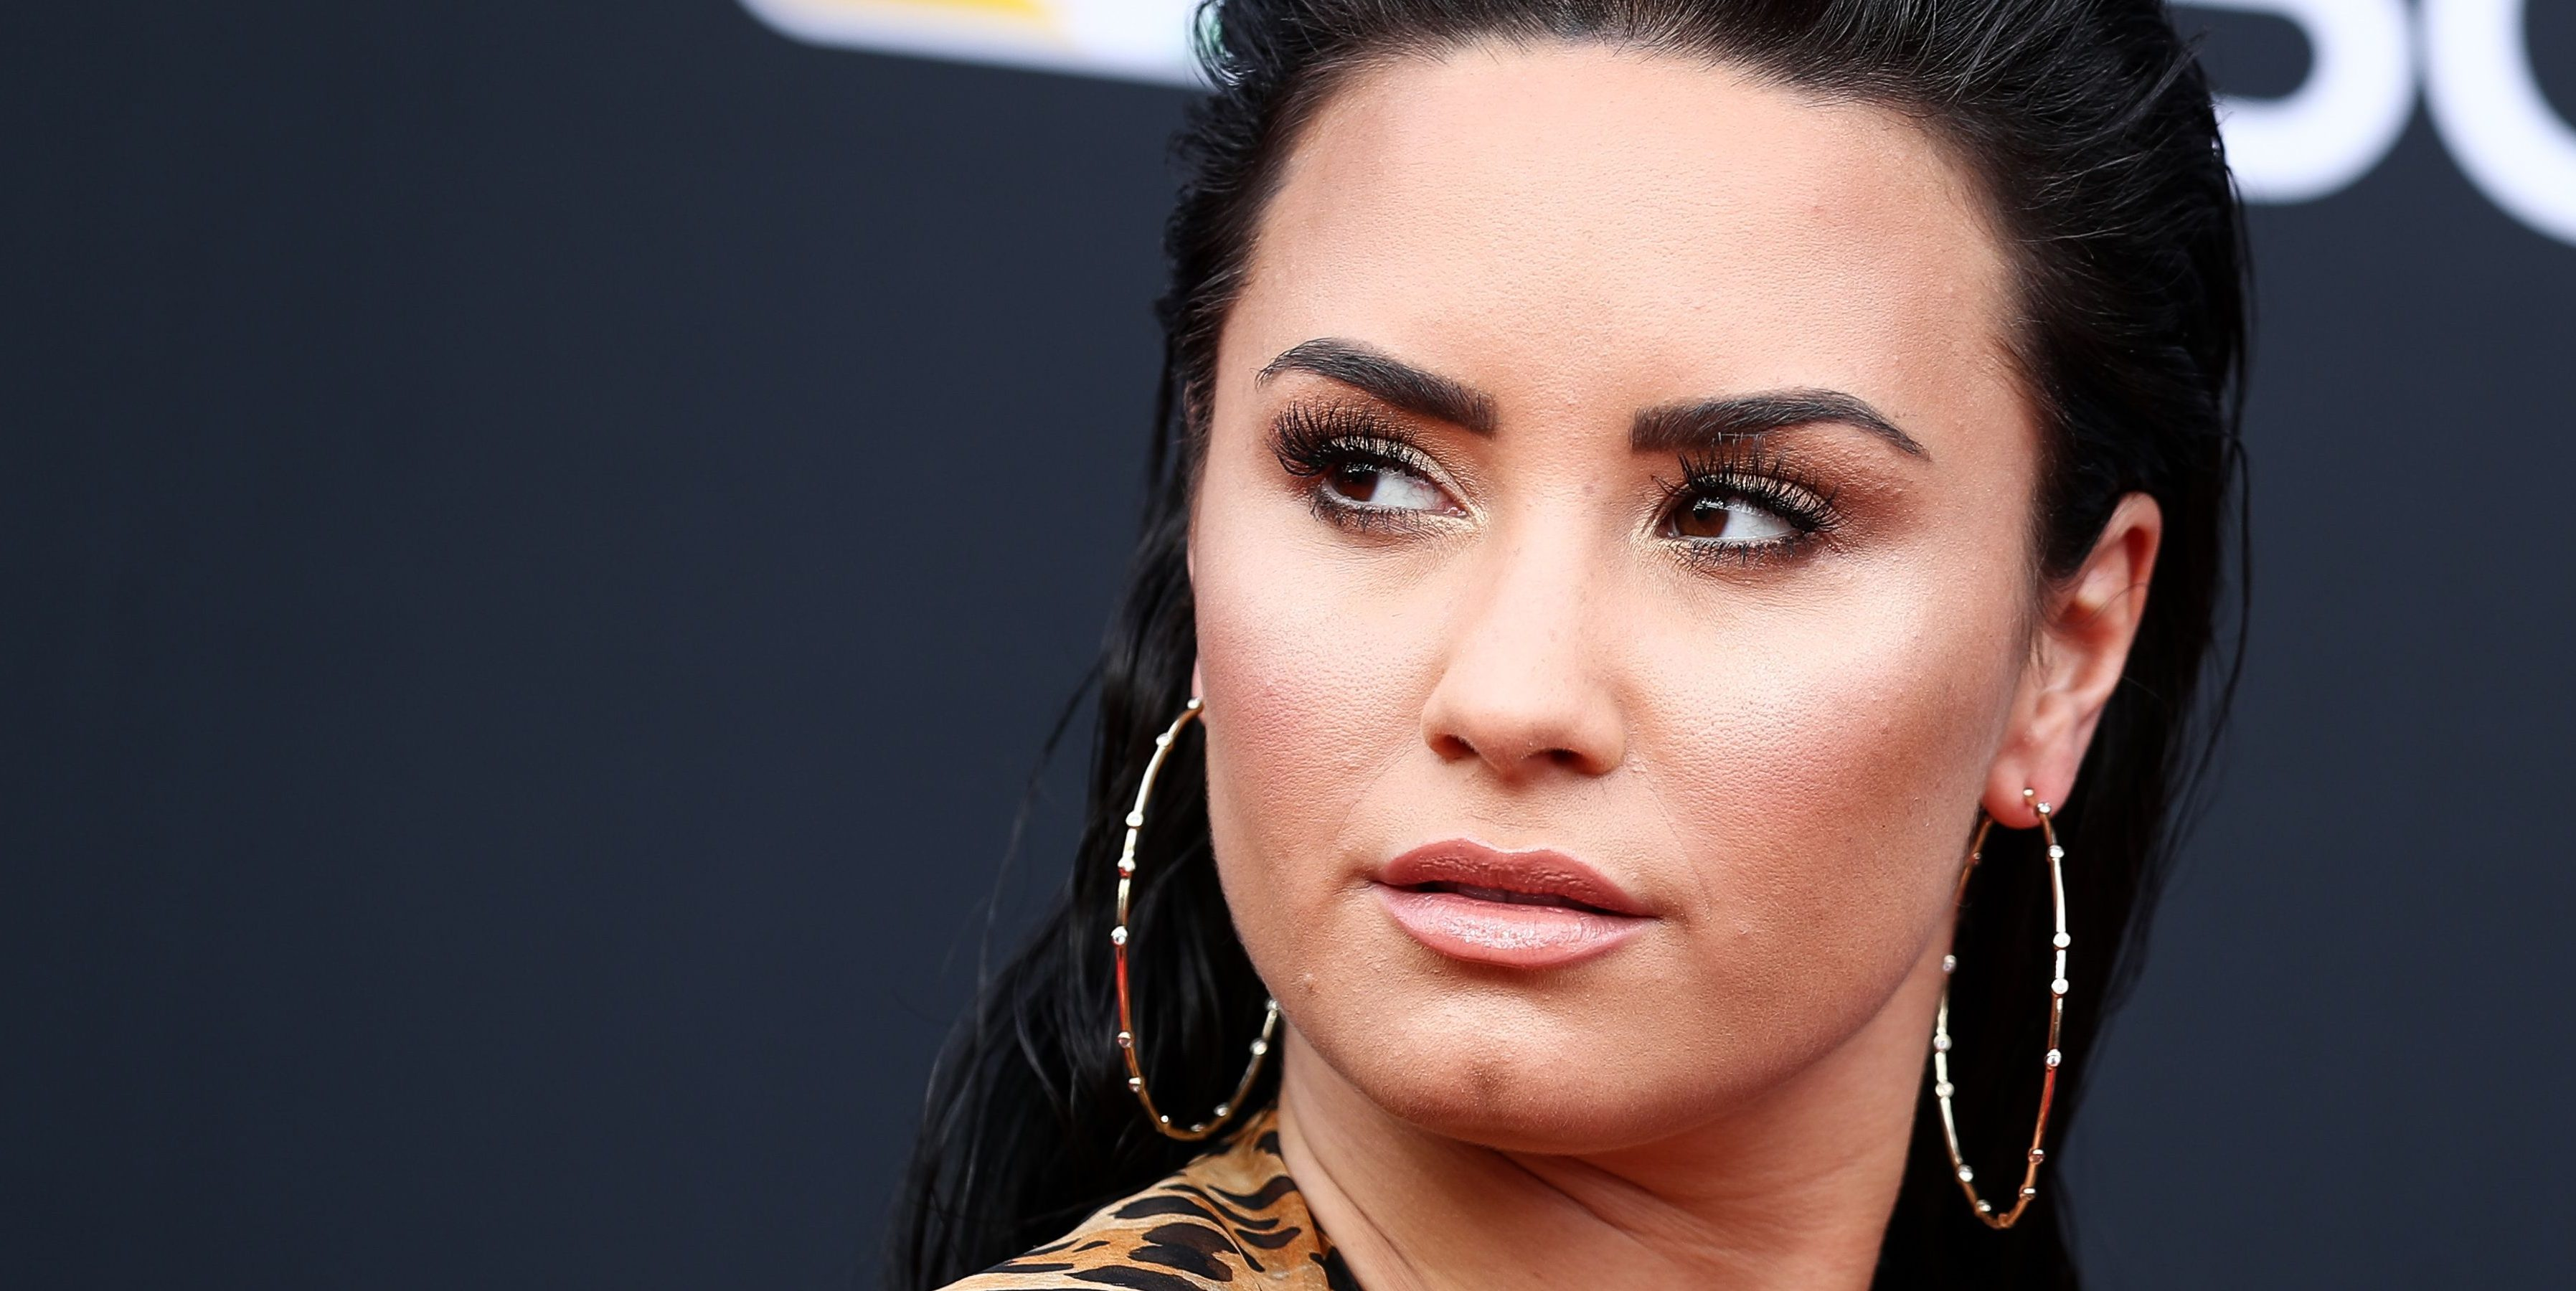 Escuchá 'Dancing With The Devil', lo nuevo de Demi Lovato